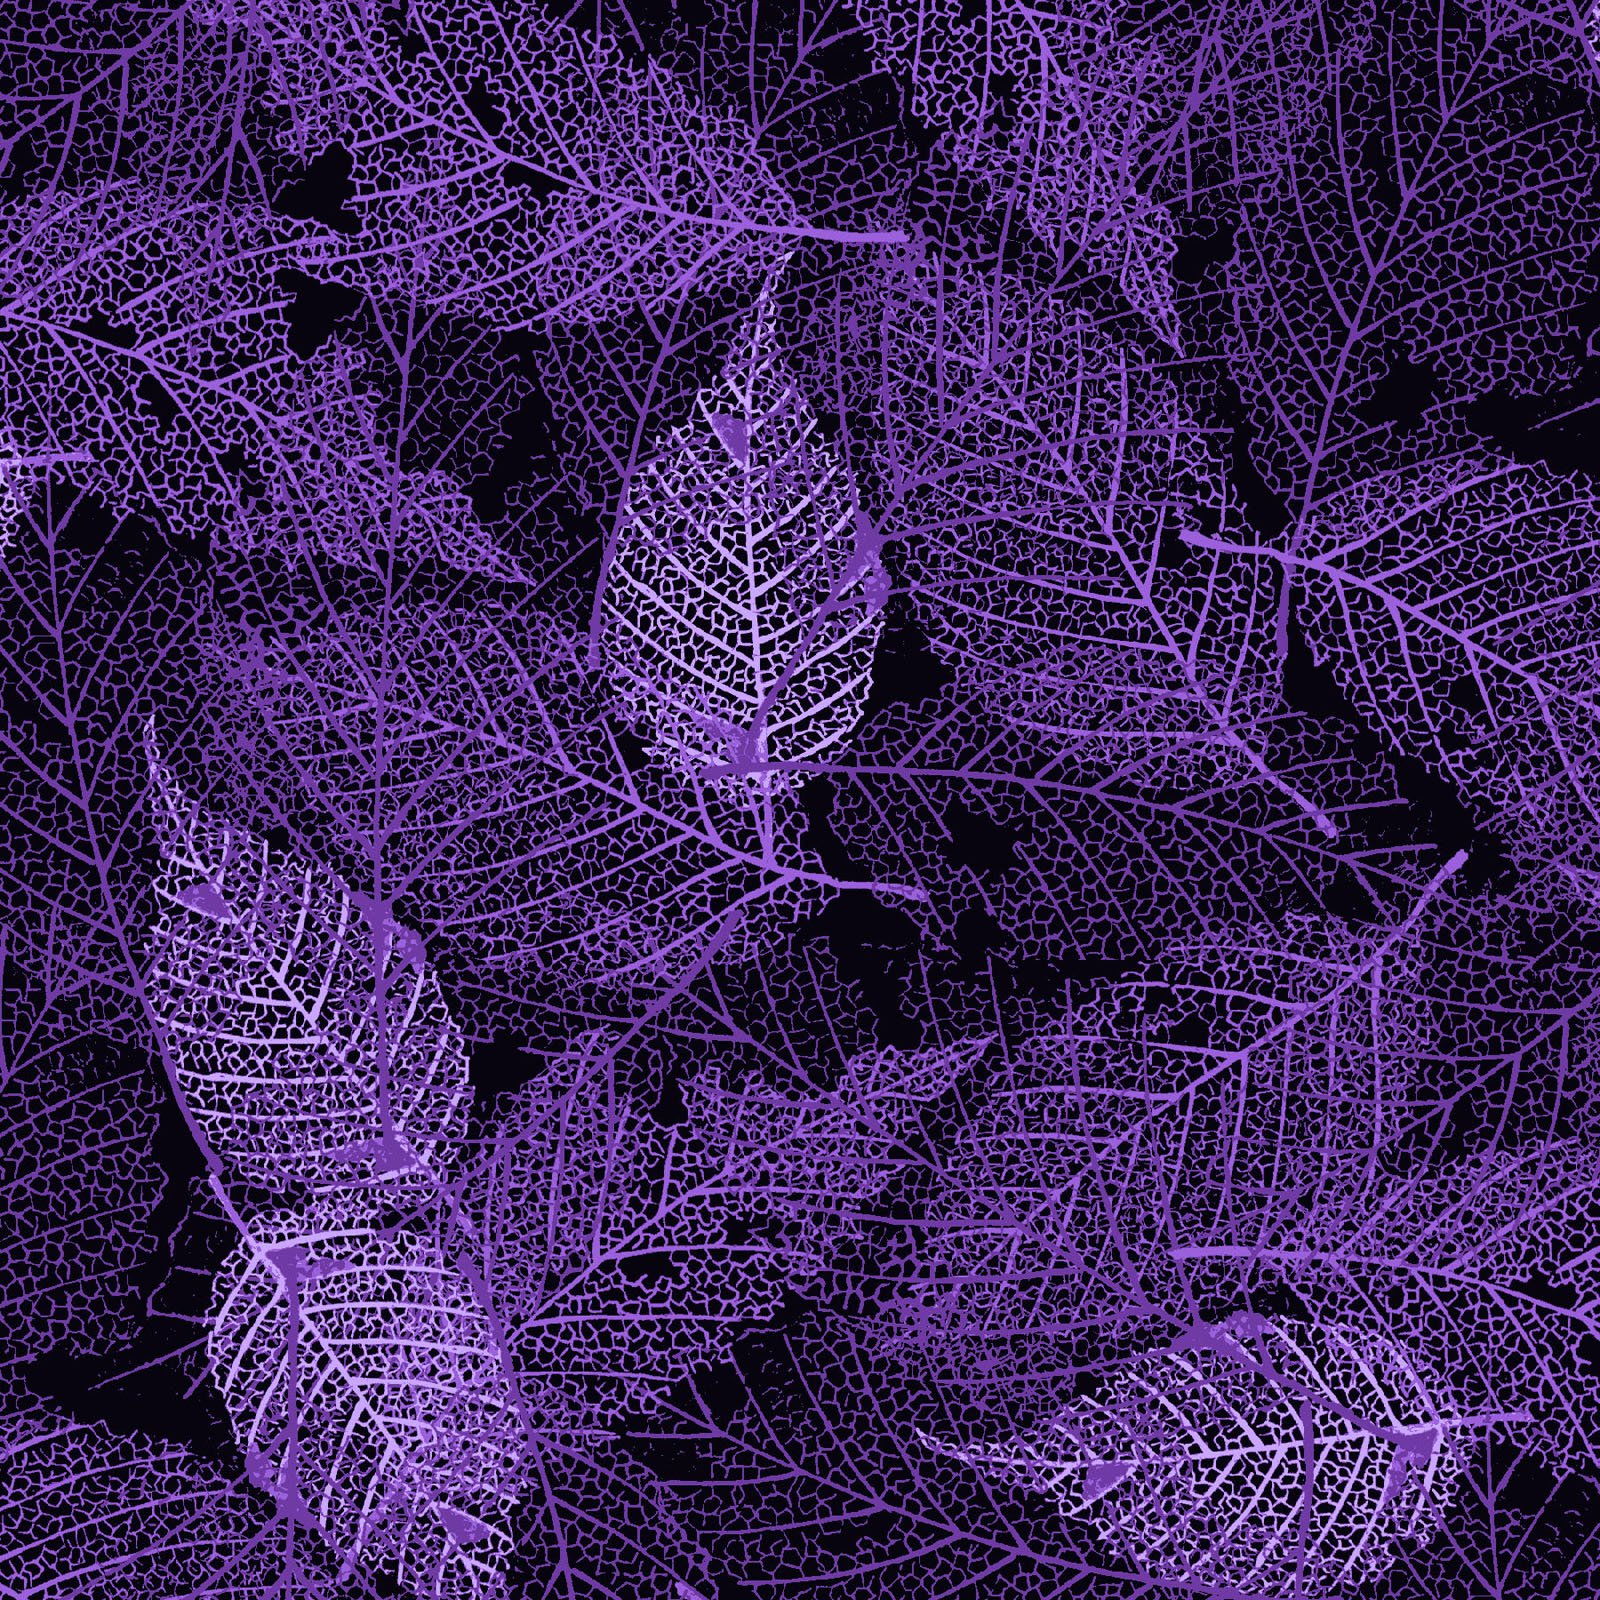 FOLI-4478 C - FOLIAGE BY P&B BOUTIQUE TEXTURE LEAVES PURPLE - ARRIVING IN MAY 2021